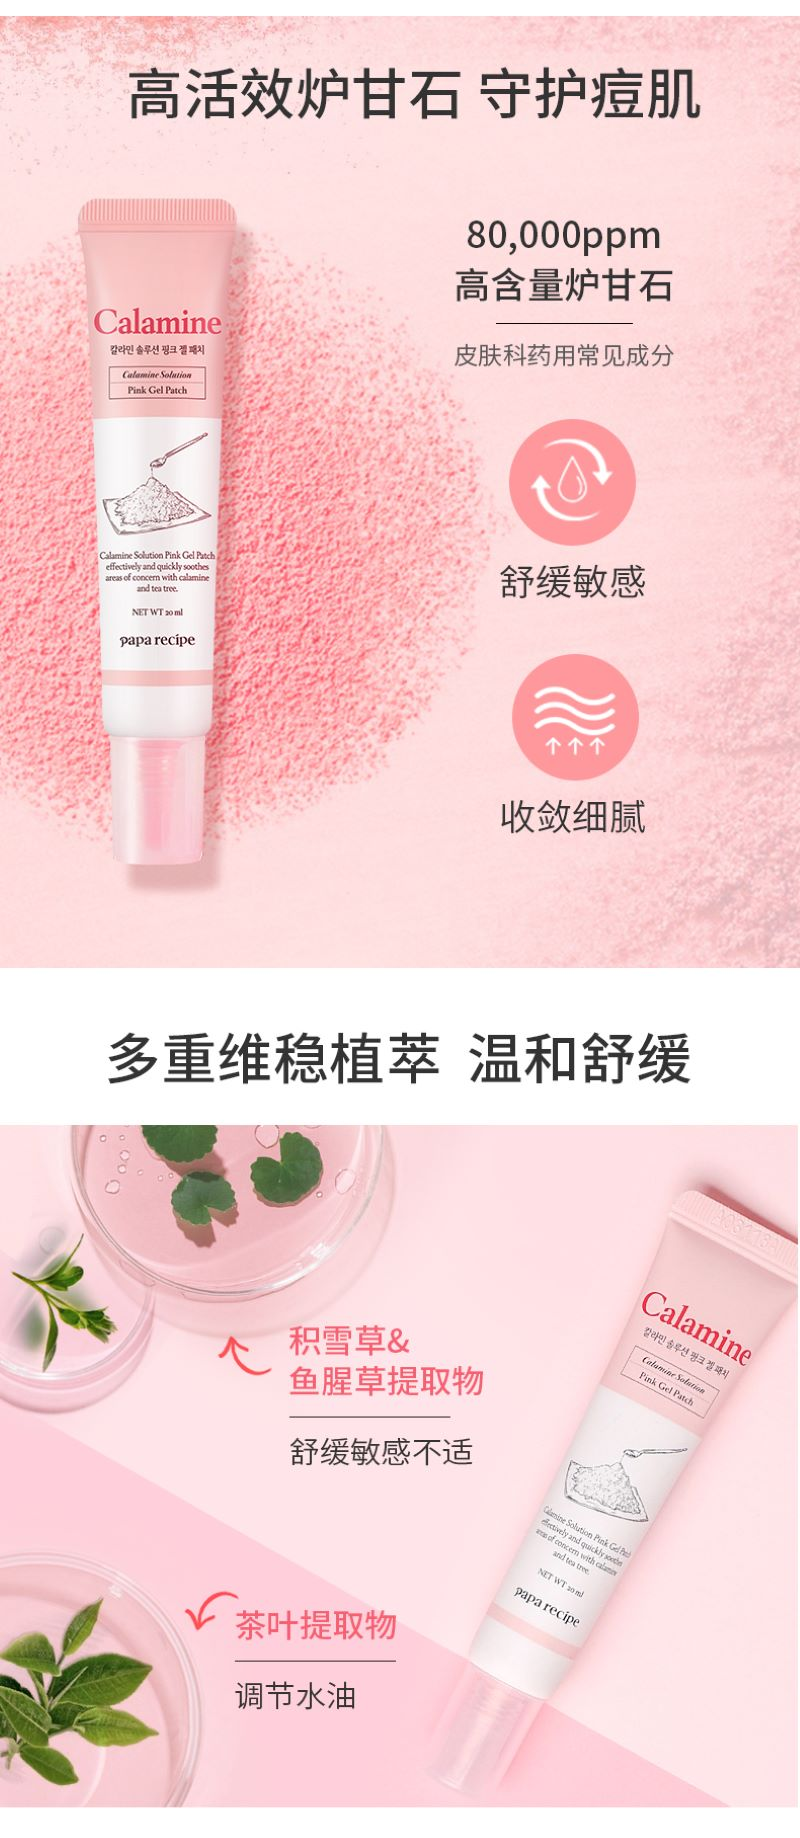 Papa Recipe Calamine Solution Pink Gel Patch (20ml) D03.jpg